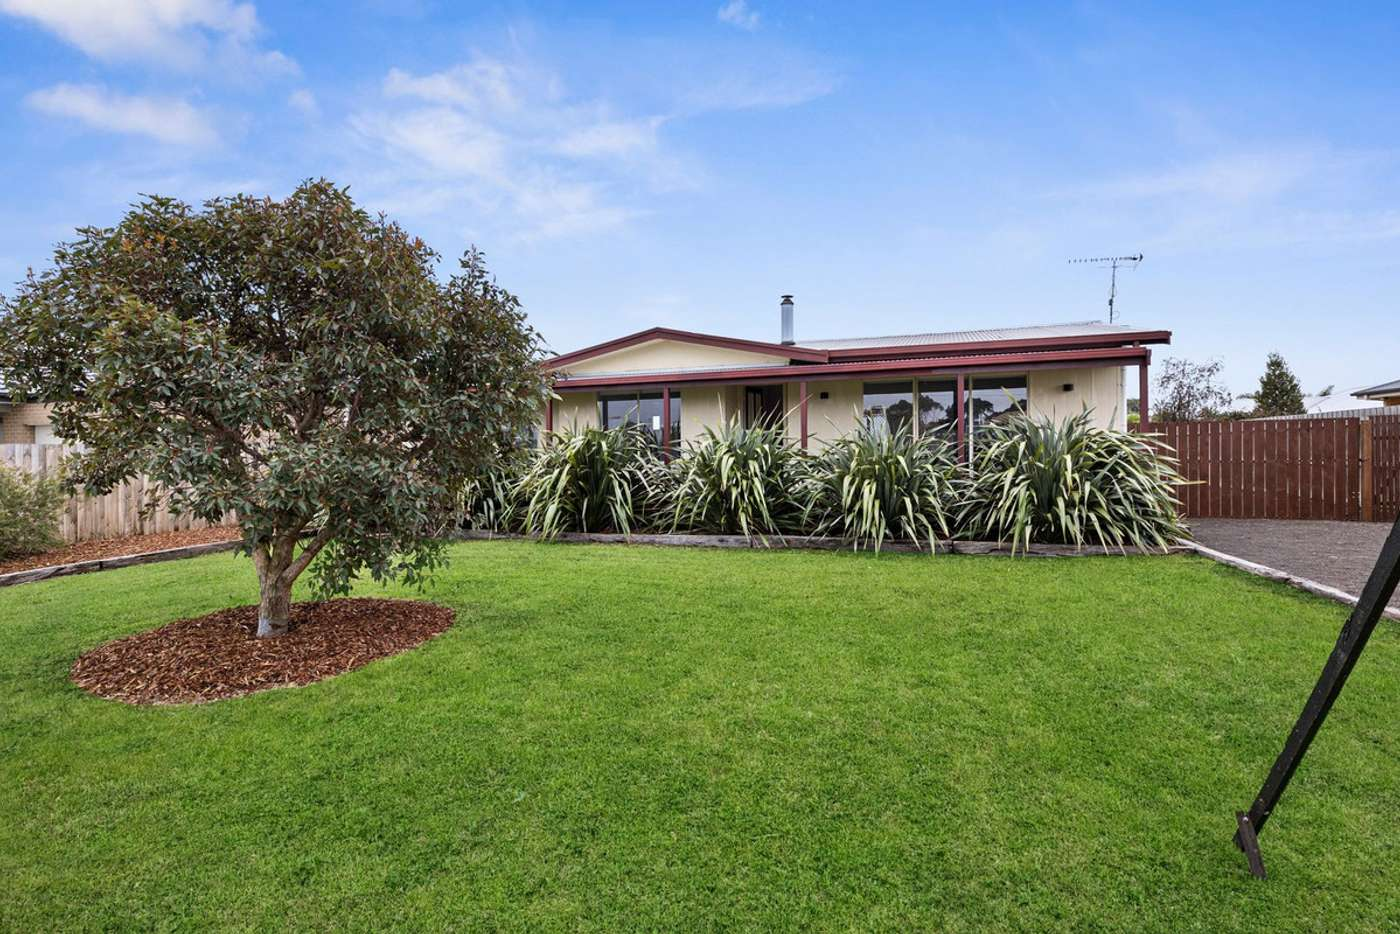 Main view of Homely house listing, 61 Harding Street, Winchelsea VIC 3241